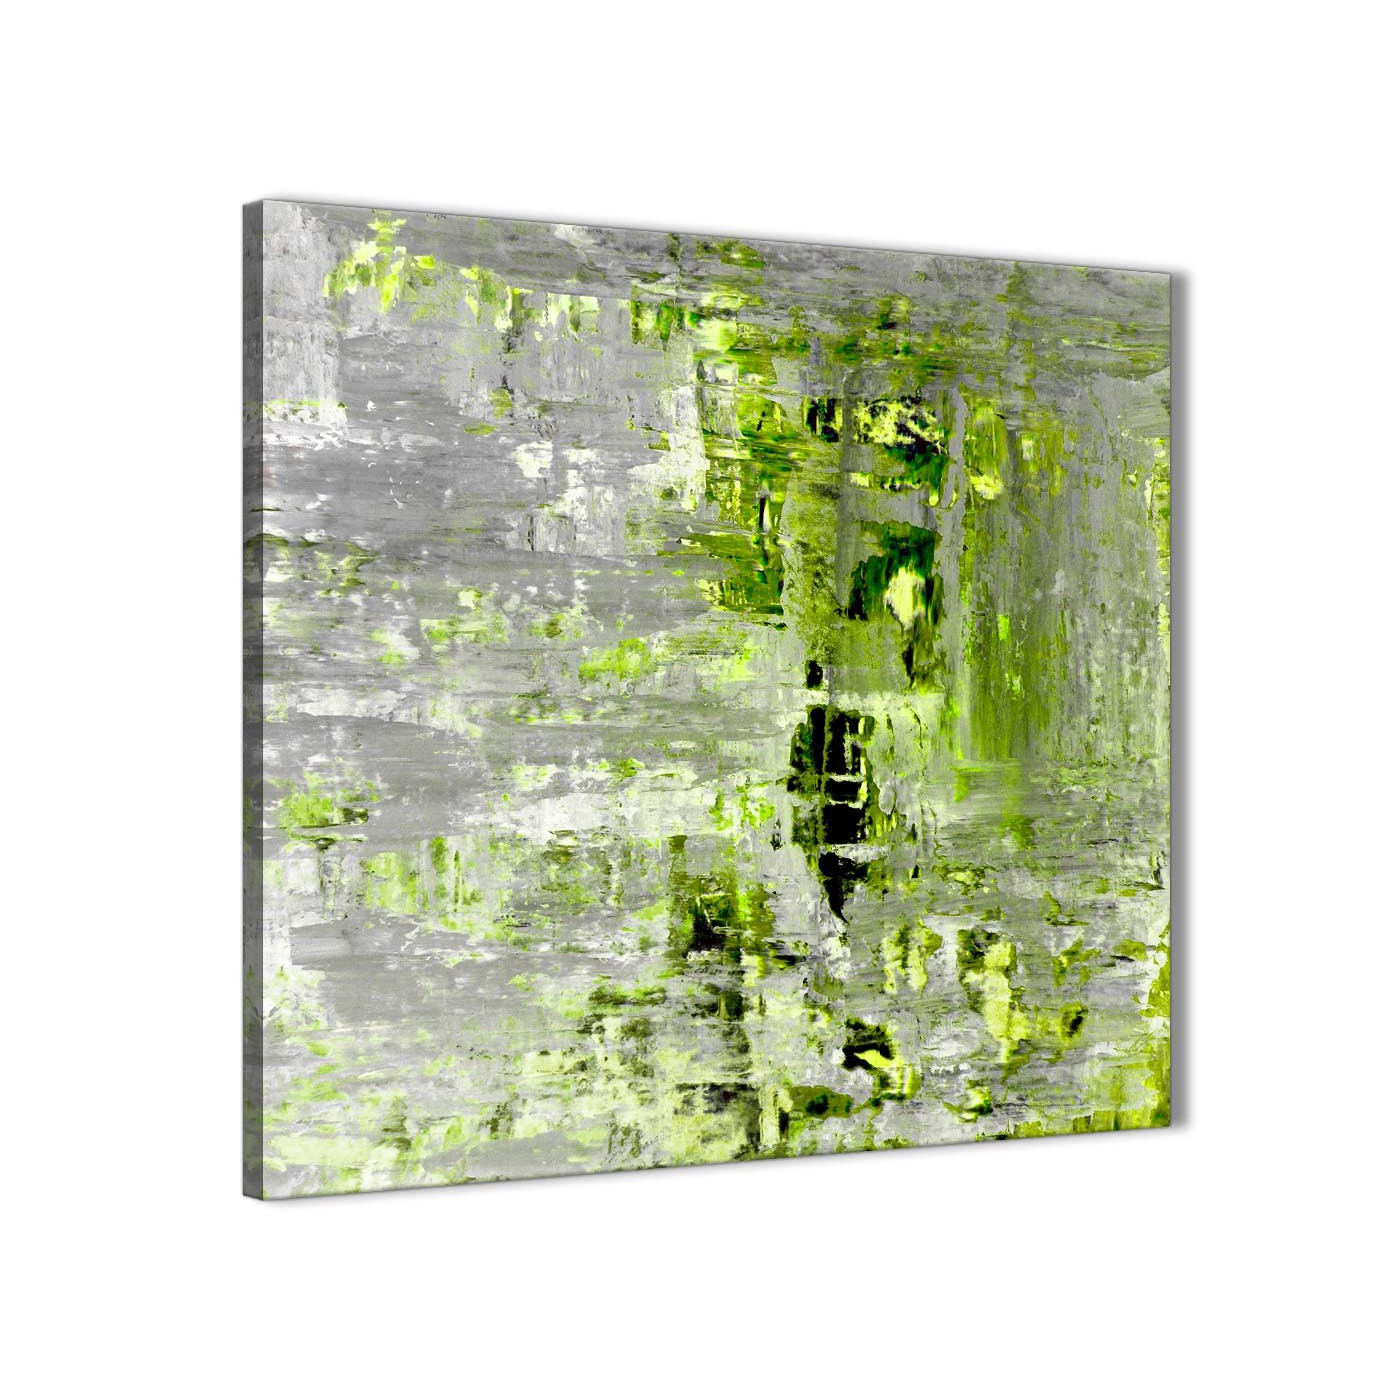 Merveilleux Modern Lime Green Grey Abstract Painting Wall Art Print Canvas Modern 49cm  Square 1S360S For Your Display Gallery Item 1 ...